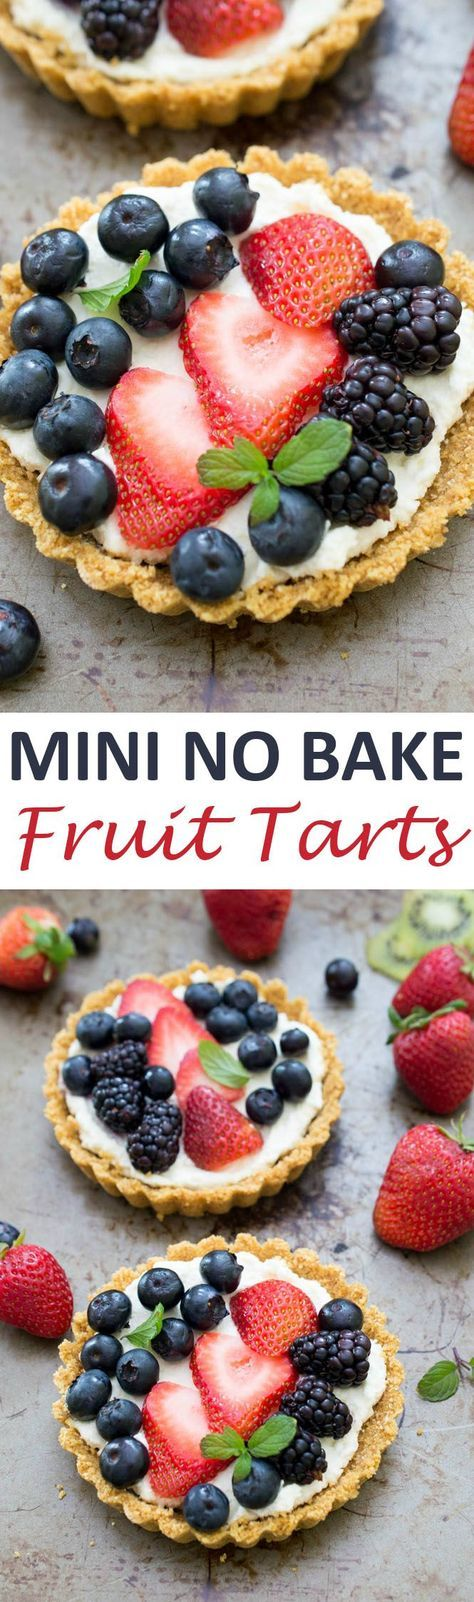 No Bake Mascarpone Fruit Tarts made with a homemade graham cracker crust and layered with fresh berries. A super colorful and easy make ahead dessert! | chefsavvy.com #recipe #dessert #mini #fruit #tart